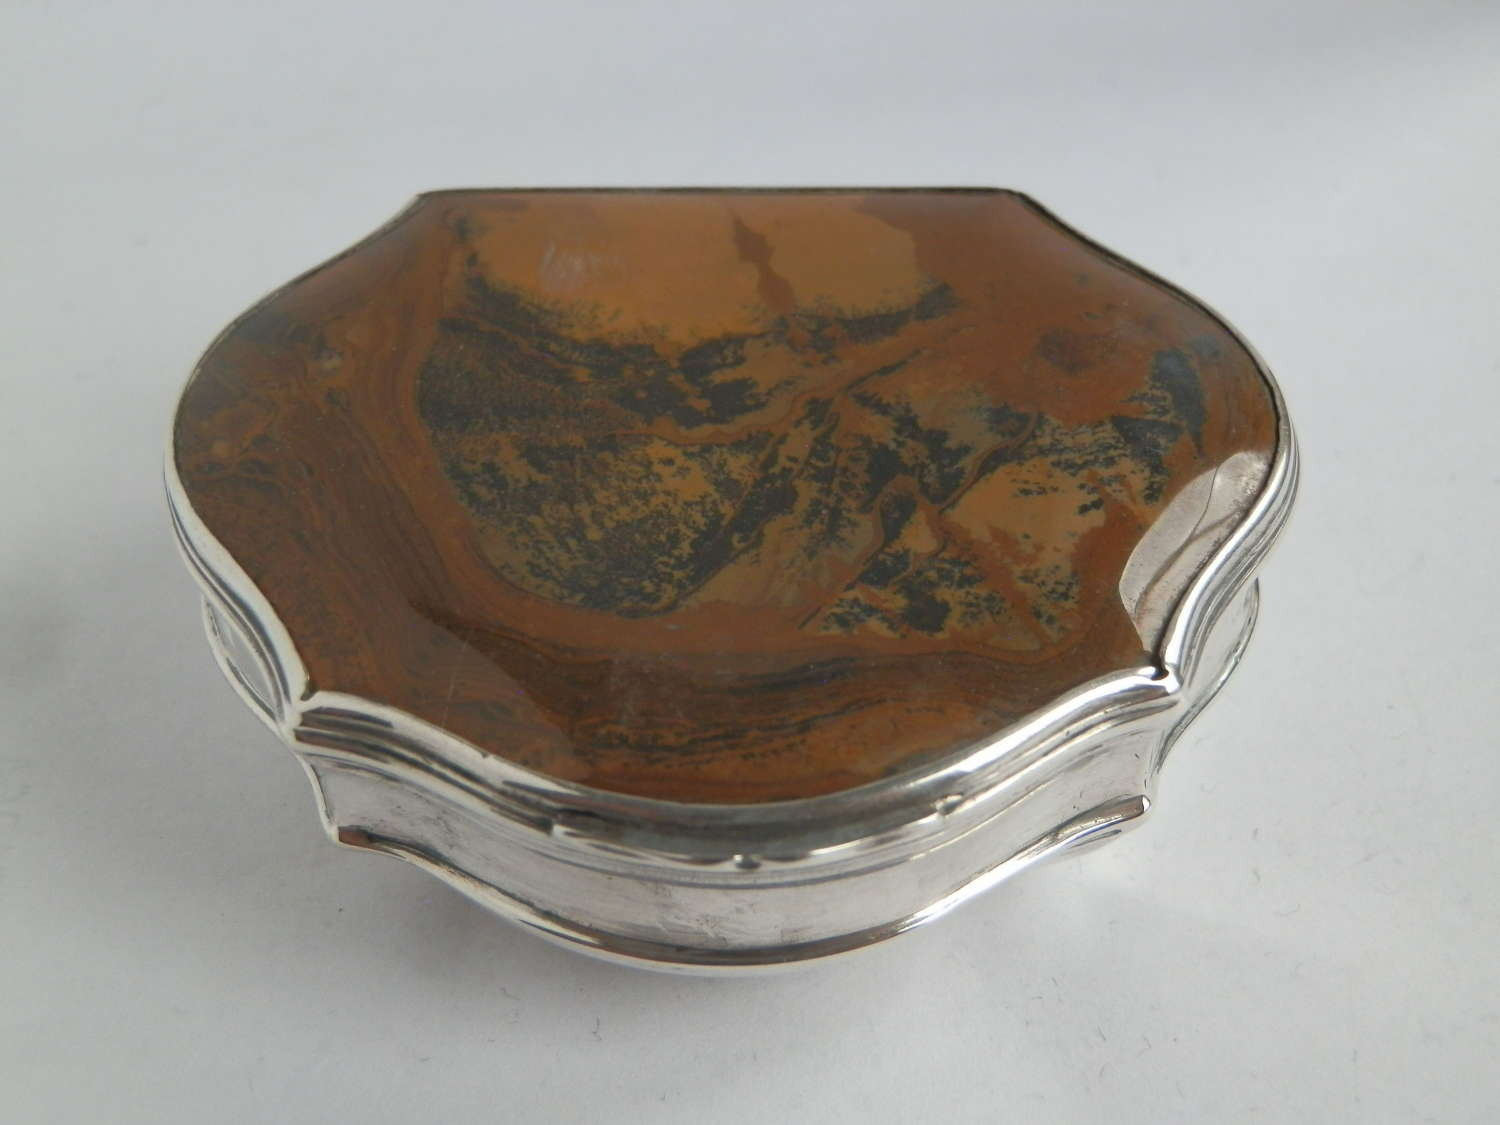 A scarce Georgian agate snuff box, c.1750